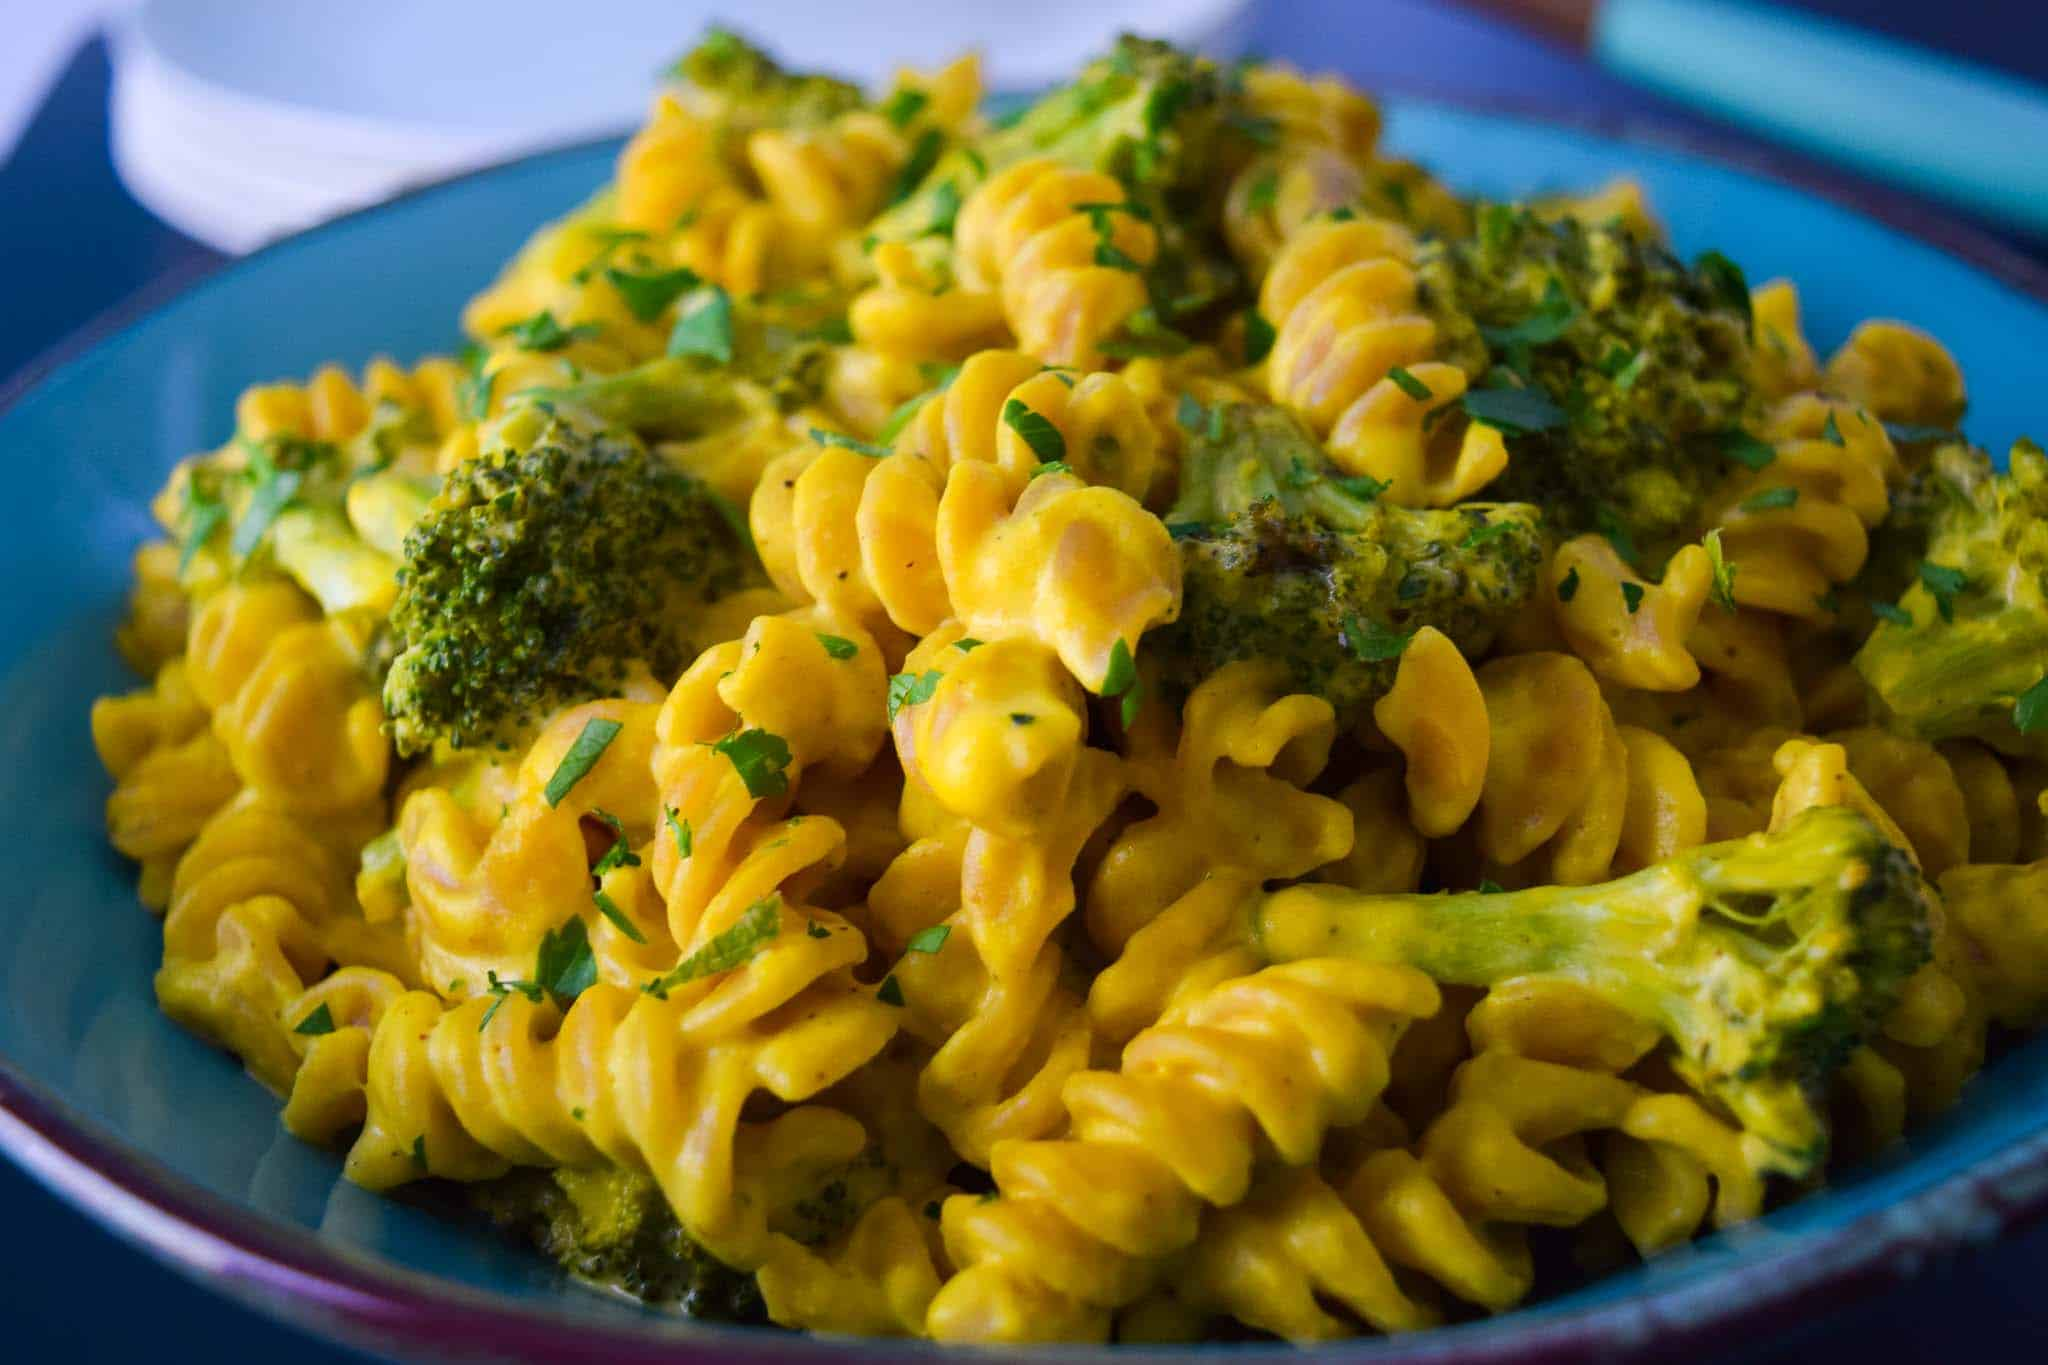 Secret Ingredient Roasted Broccoli Rotini on blue plate close up